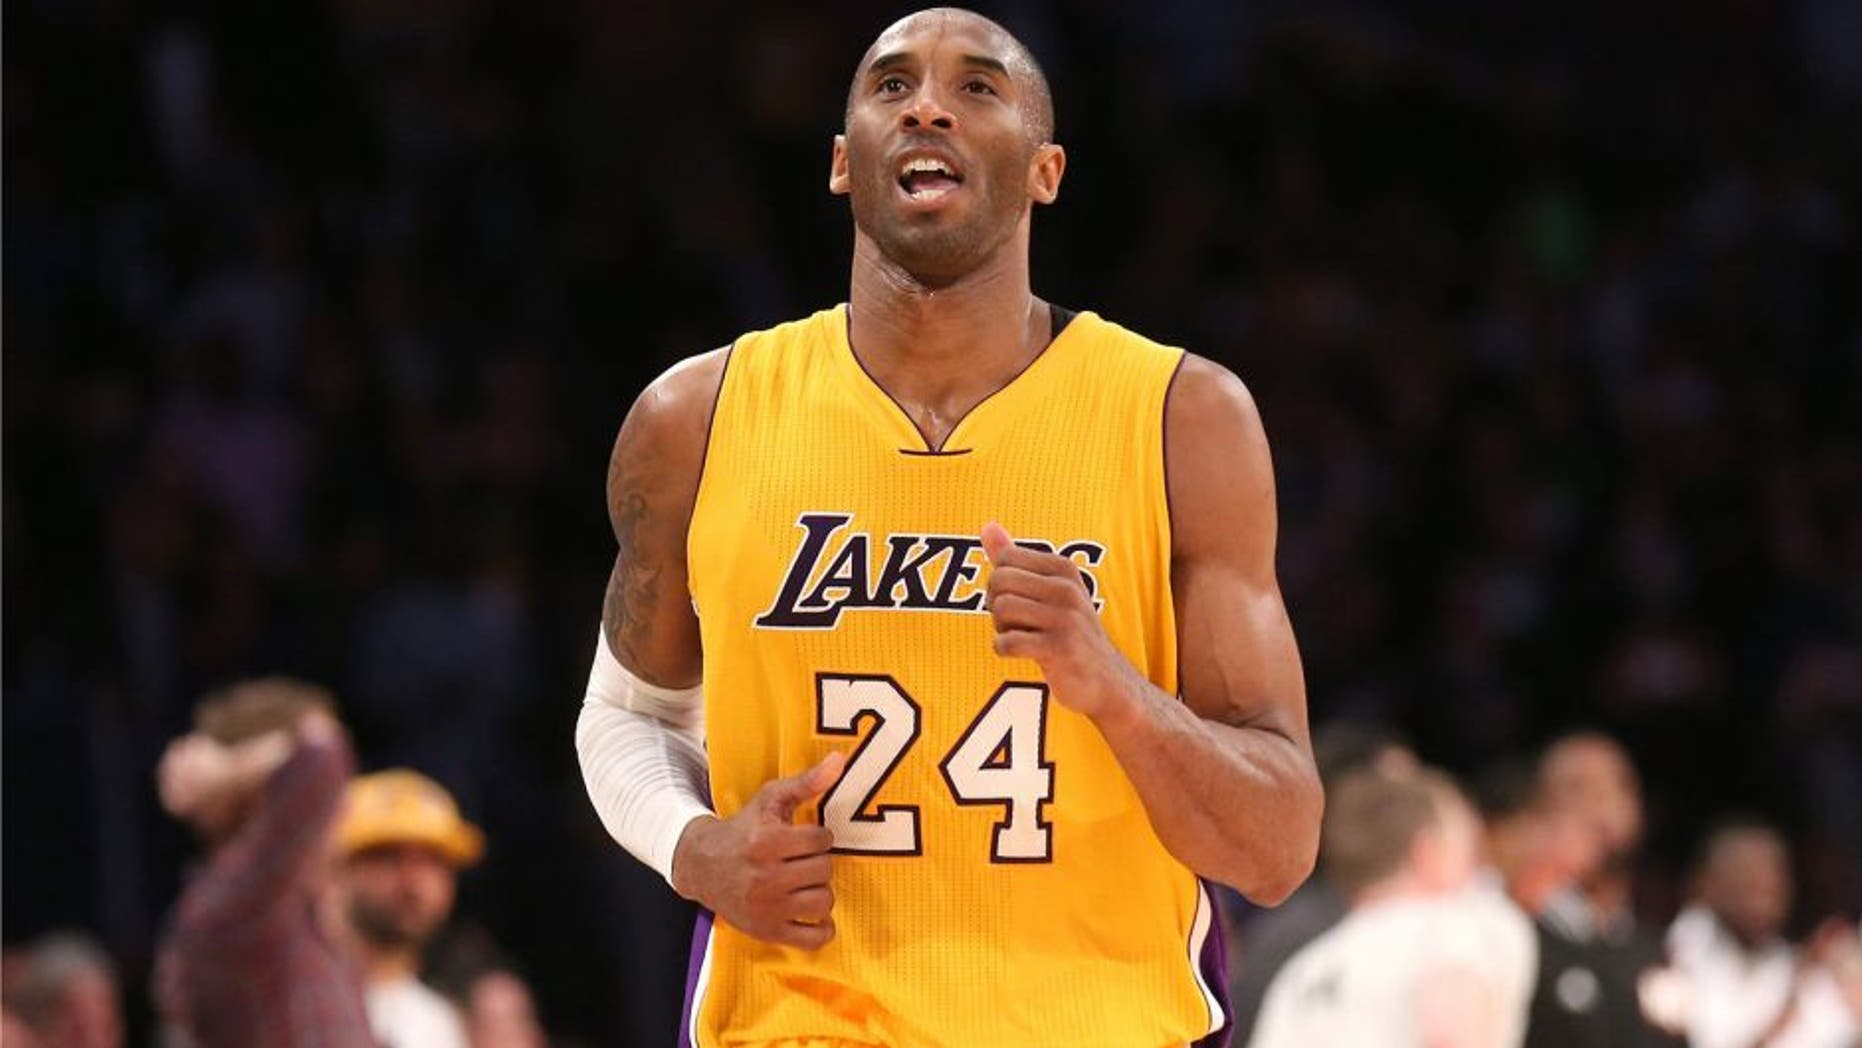 LOS ANGELES, CA - JANUARY 13: Kobe Bryant #24 of the Los Angeles Lakers reacts as he runs off the court after missing his three point attempt to tie the score as time ran out in the game against the Miami Heat at Staples Center on January 13, 2015 in Los Angeles, California. The Heat won 78-75. NOTE TO USER: User expressly acknowledges and agrees that, by downloading and or using this photograph, User is consenting to the terms and conditions of the Getty Images License Agreement. (Photo by Stephen Dunn/Getty Images)